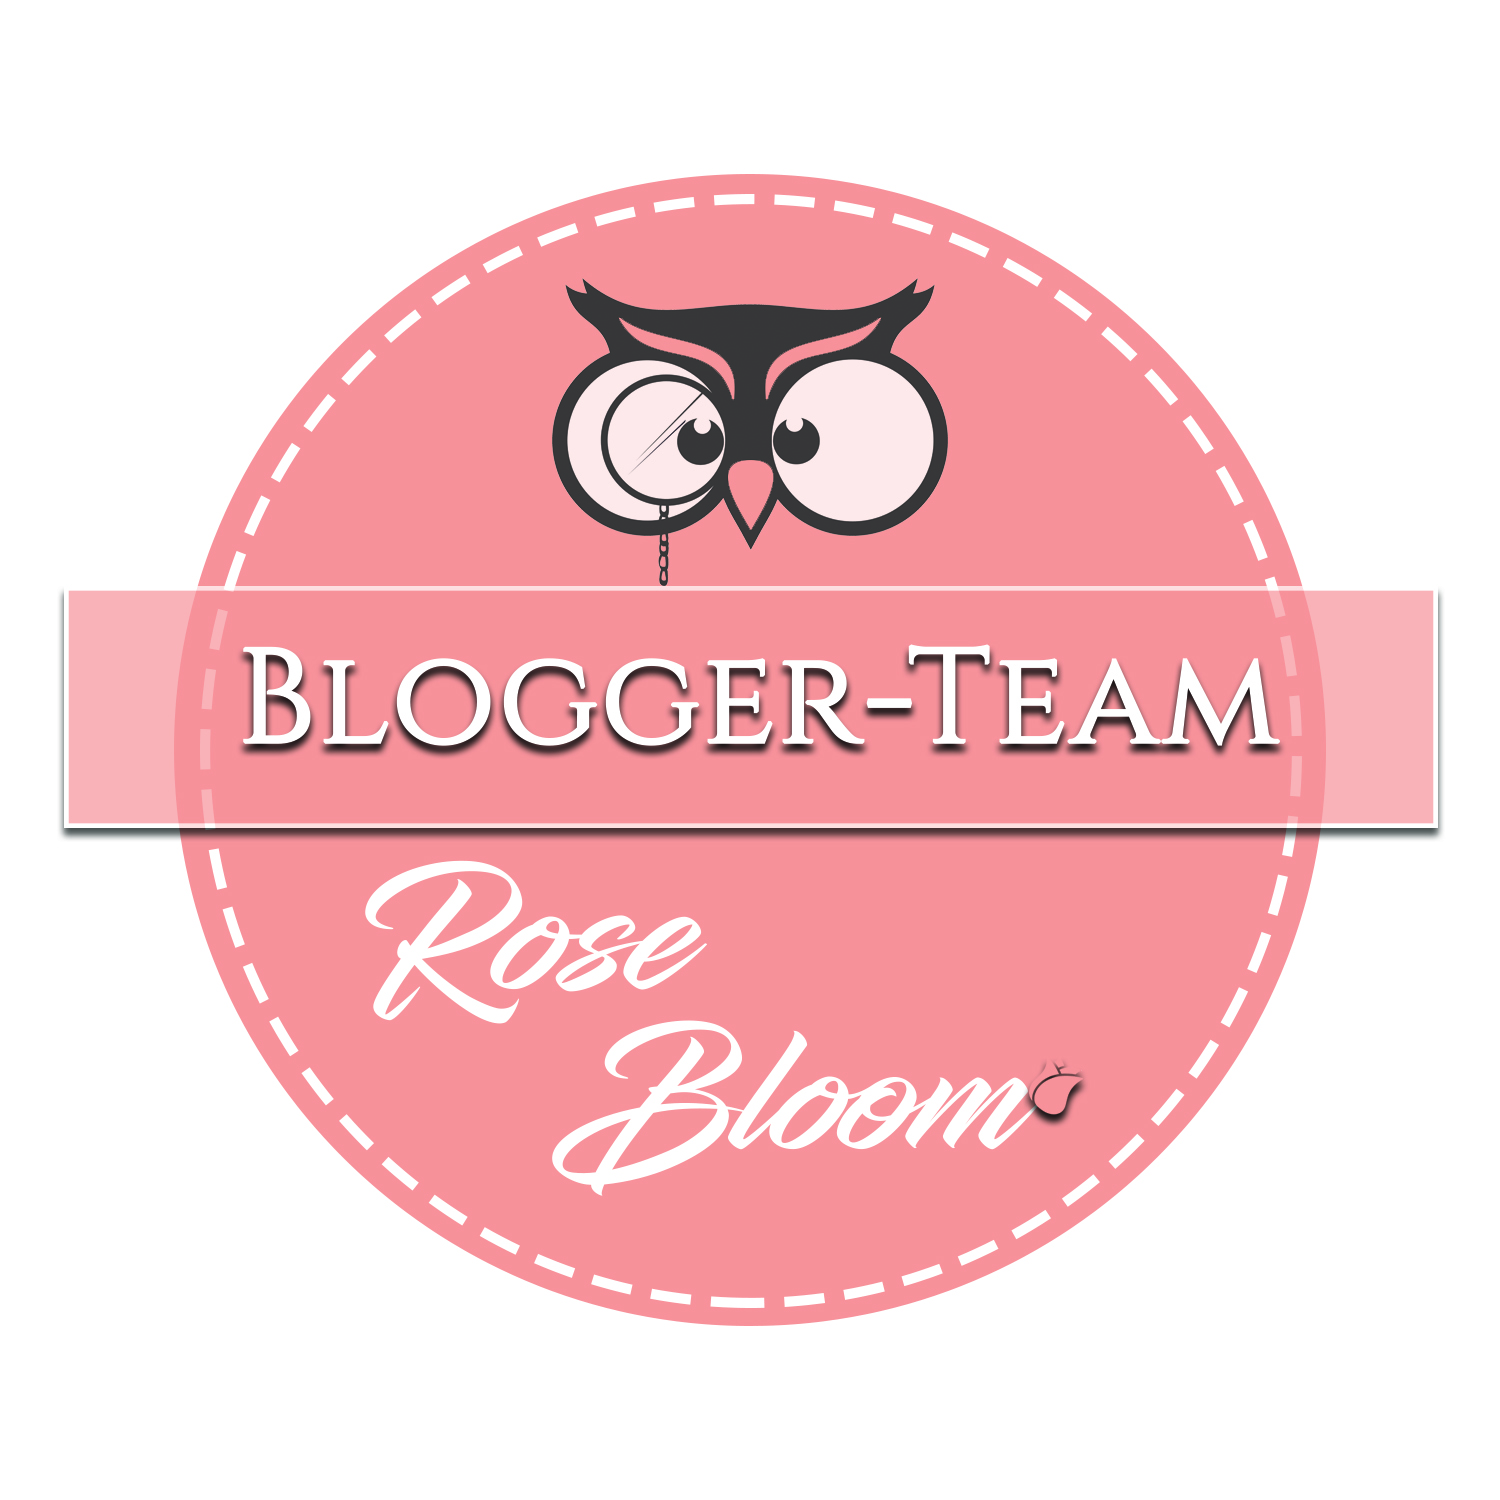 Blogger Team Rose Bloom